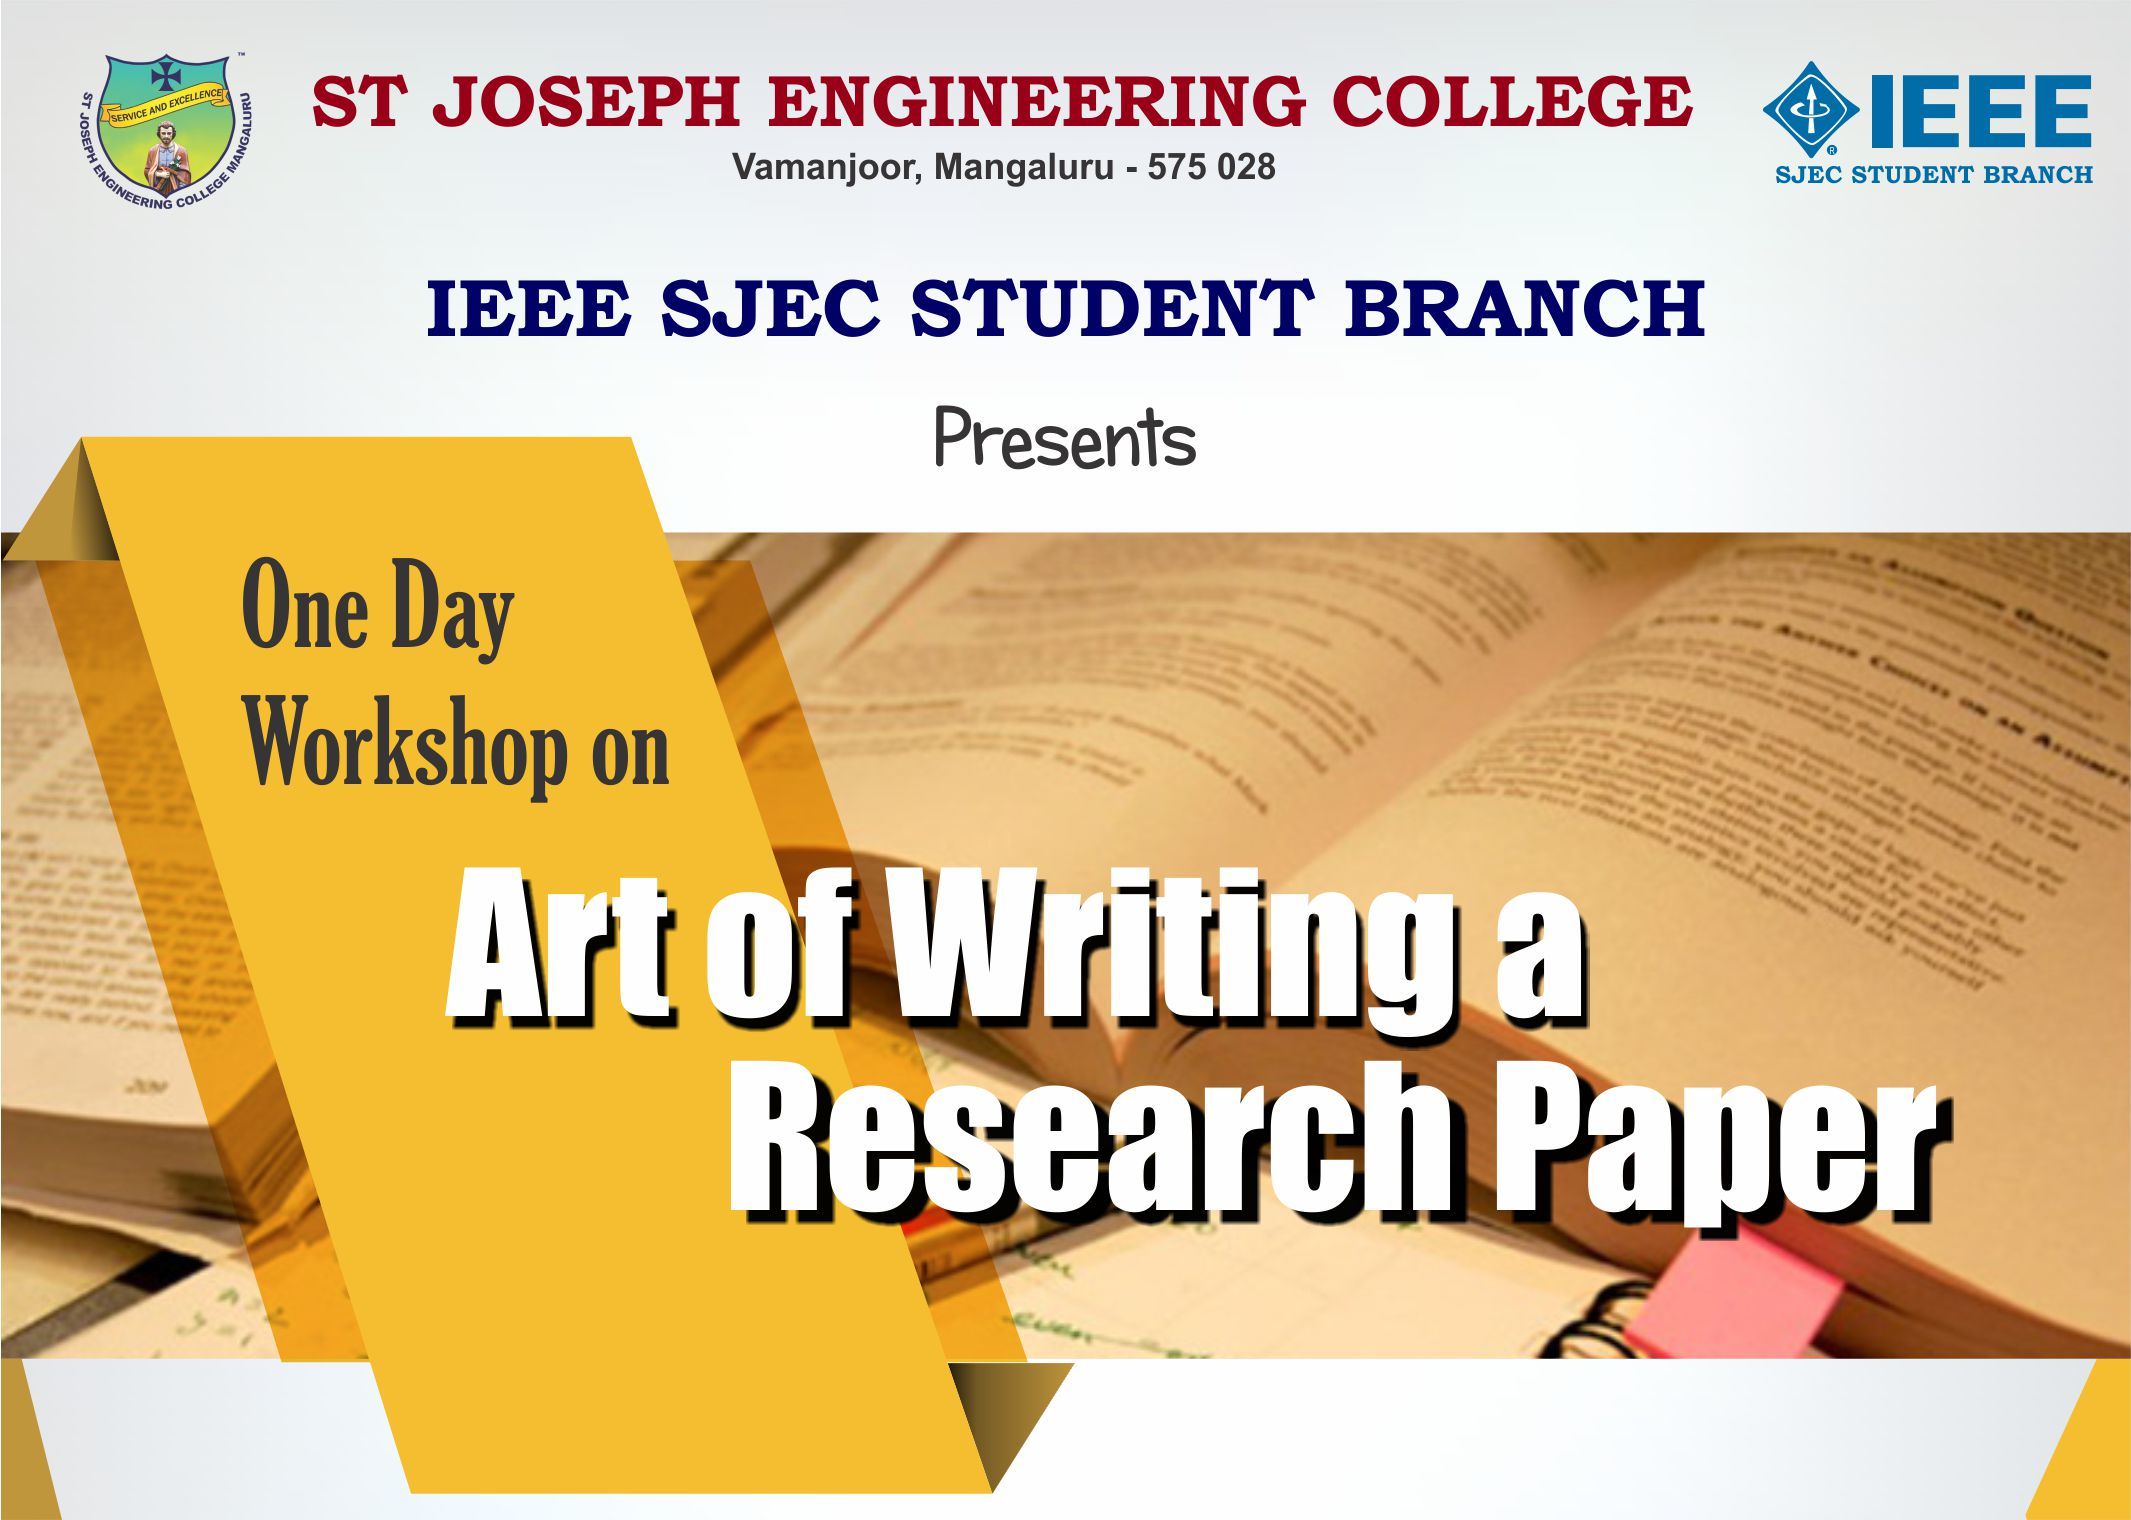 005 Research Paper About Writing Workshop Rare Topics Creative Full